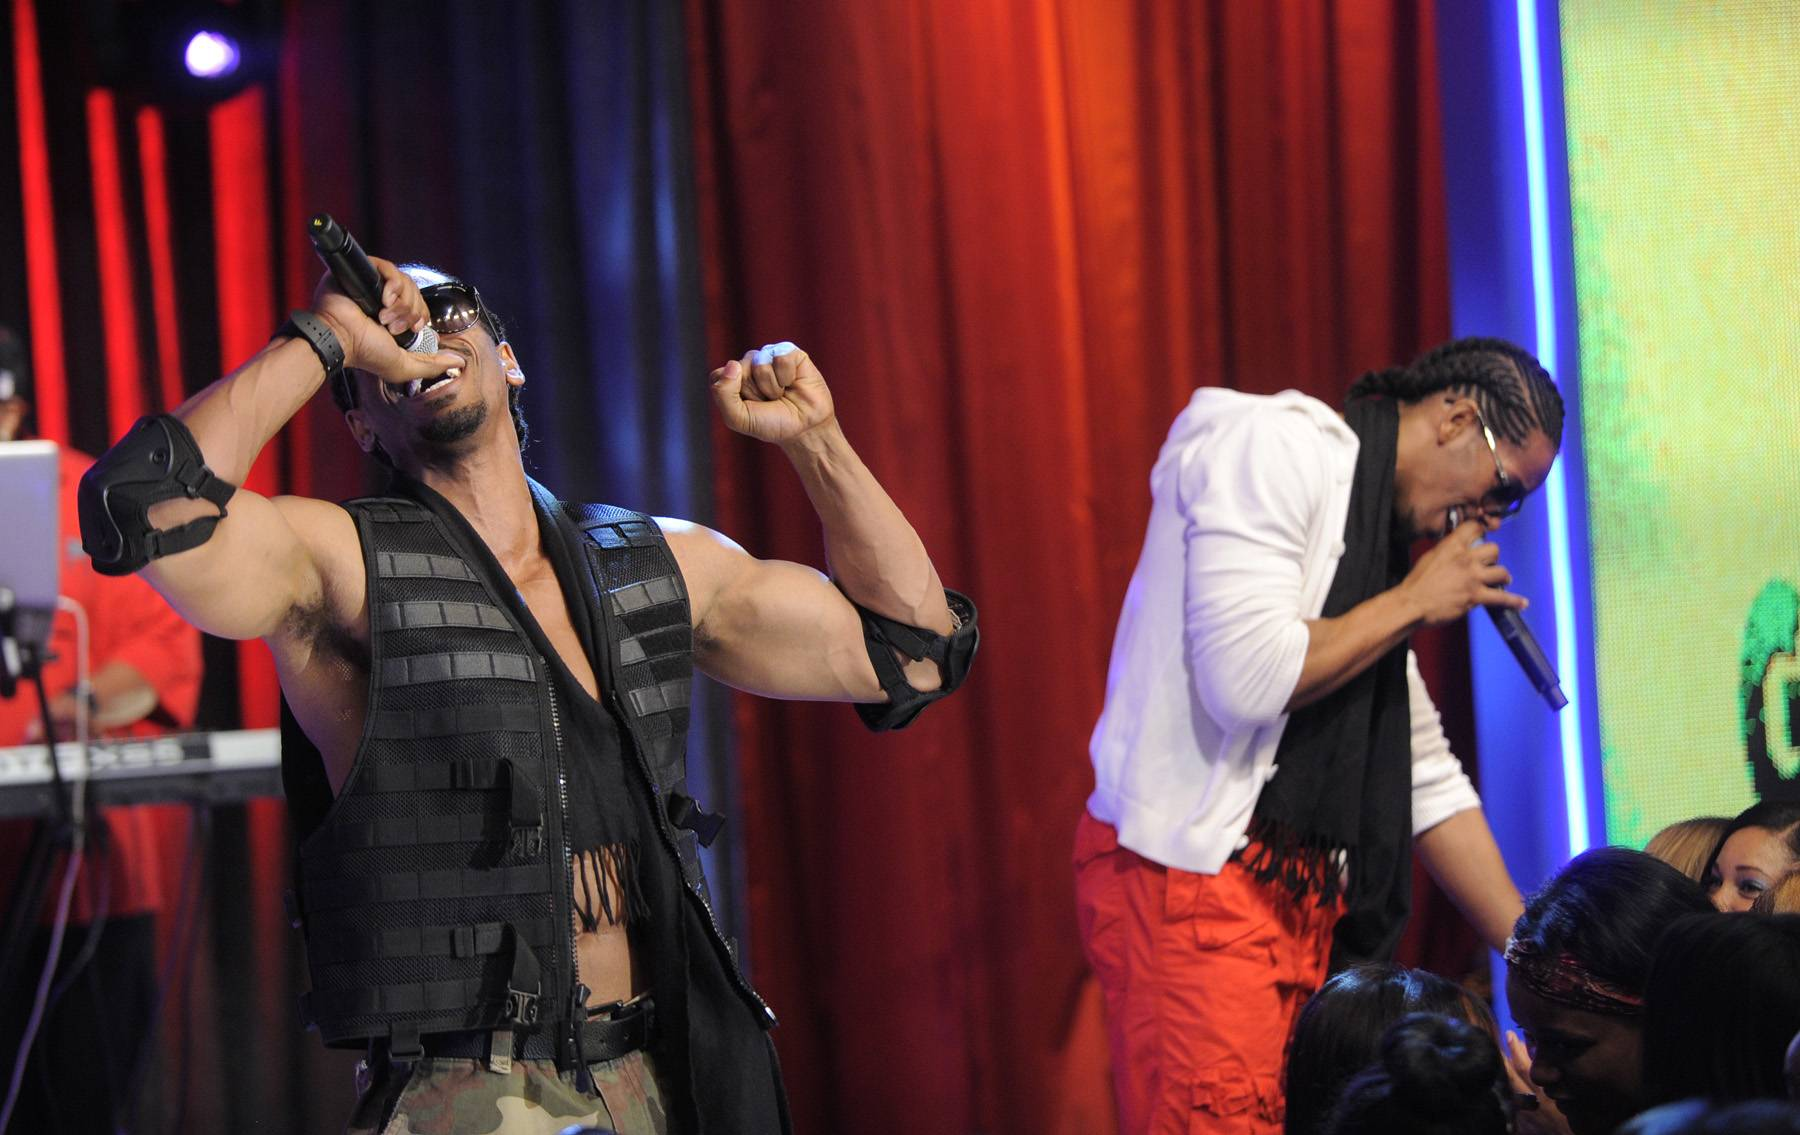 Timez 2 Leaves It on the Stage - Wild Out Wednesday competitors Timez 2 at 106 & Park, May 2, 2012.(Photo: John Ricard/BET)